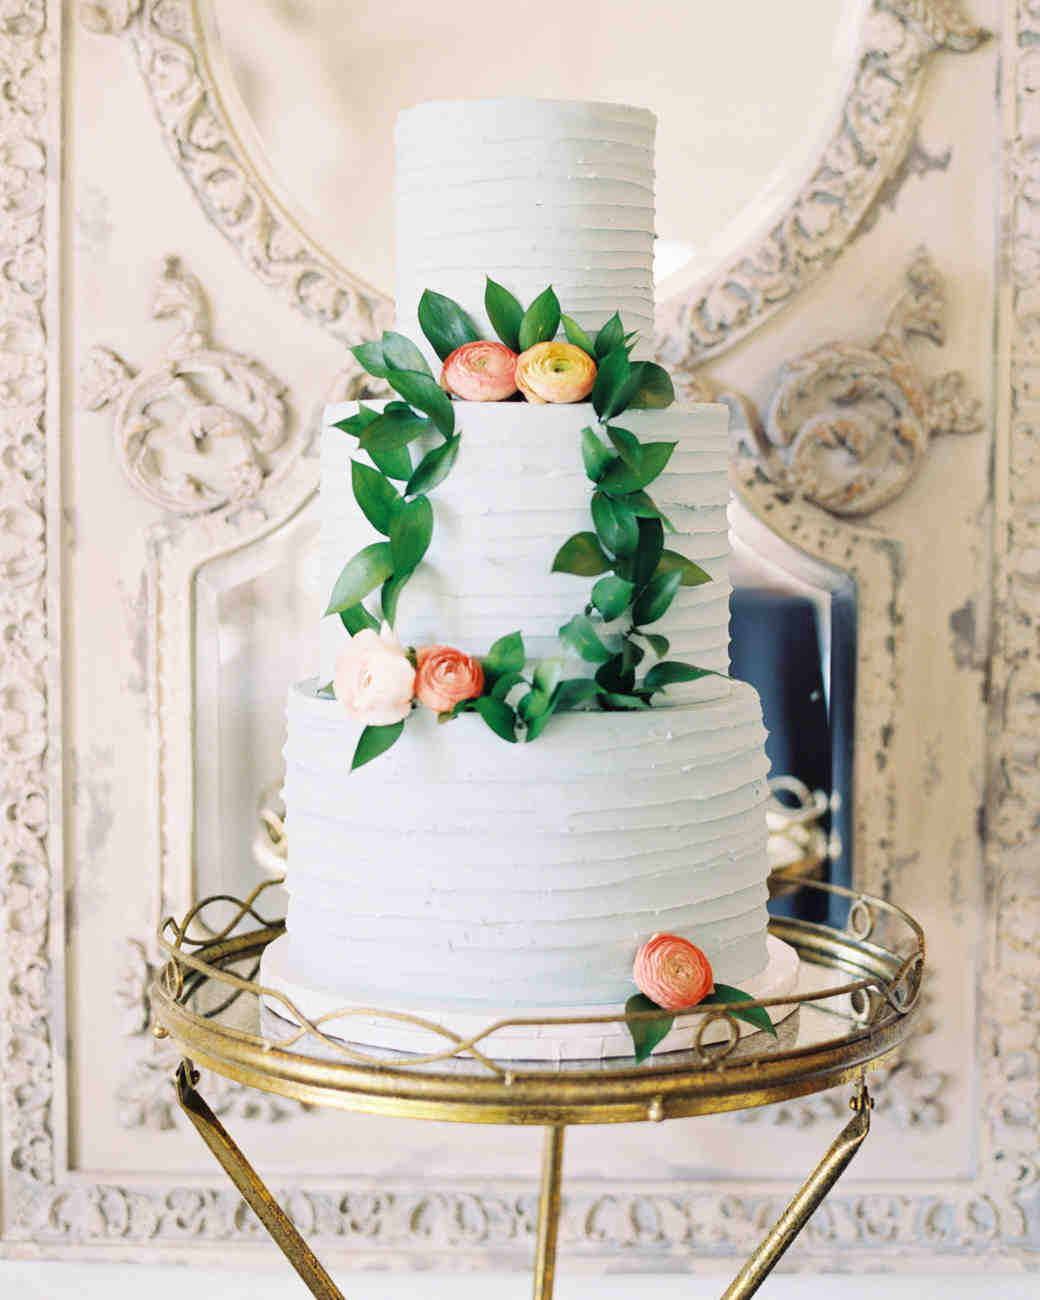 three tier cake sitting on gold stand